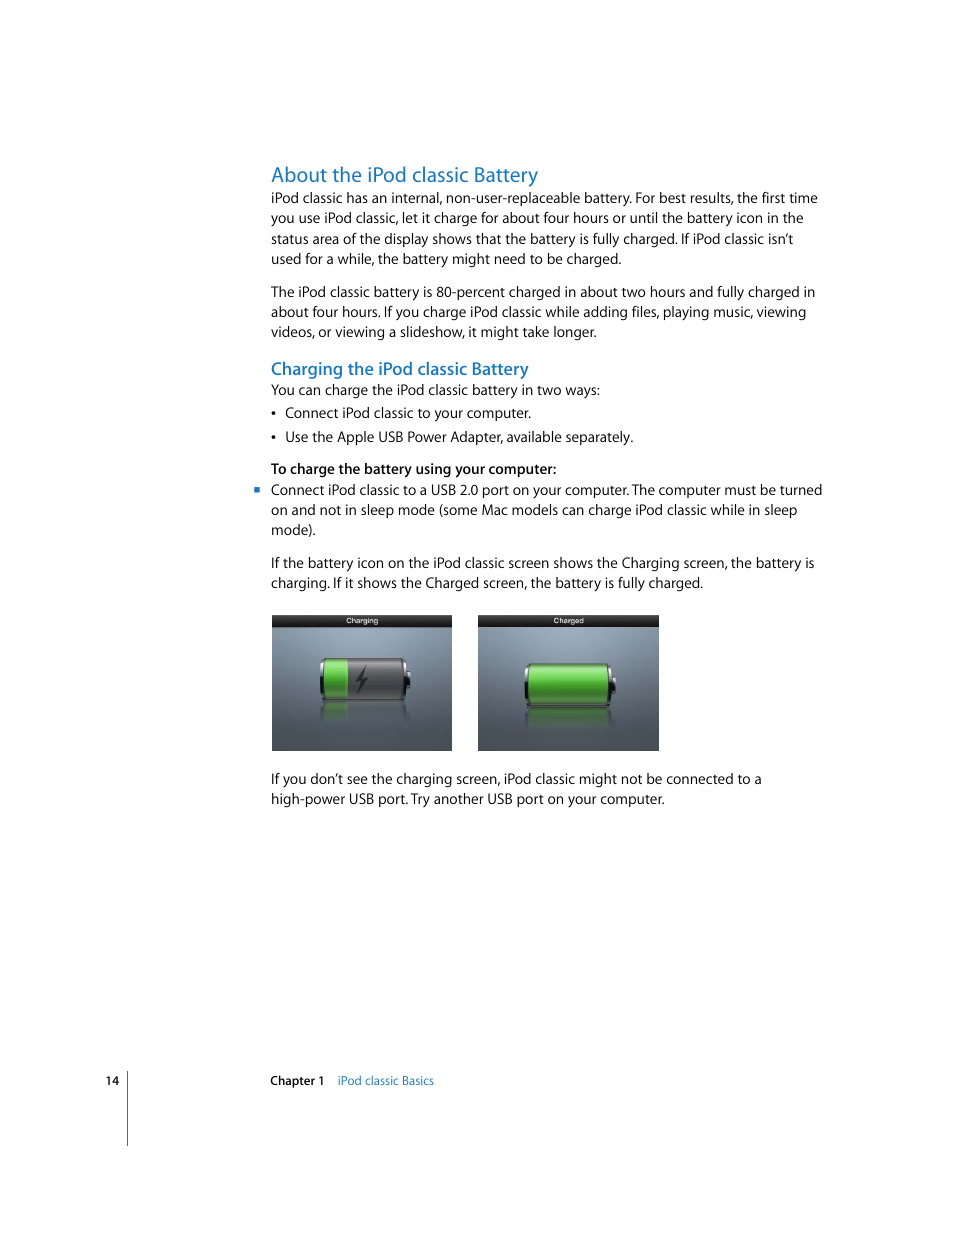 About the ipod classic battery, Charging the ipod classic battery, About  the ipod classic battery | Apple iPod Classic User Manual | Page 14 / 76